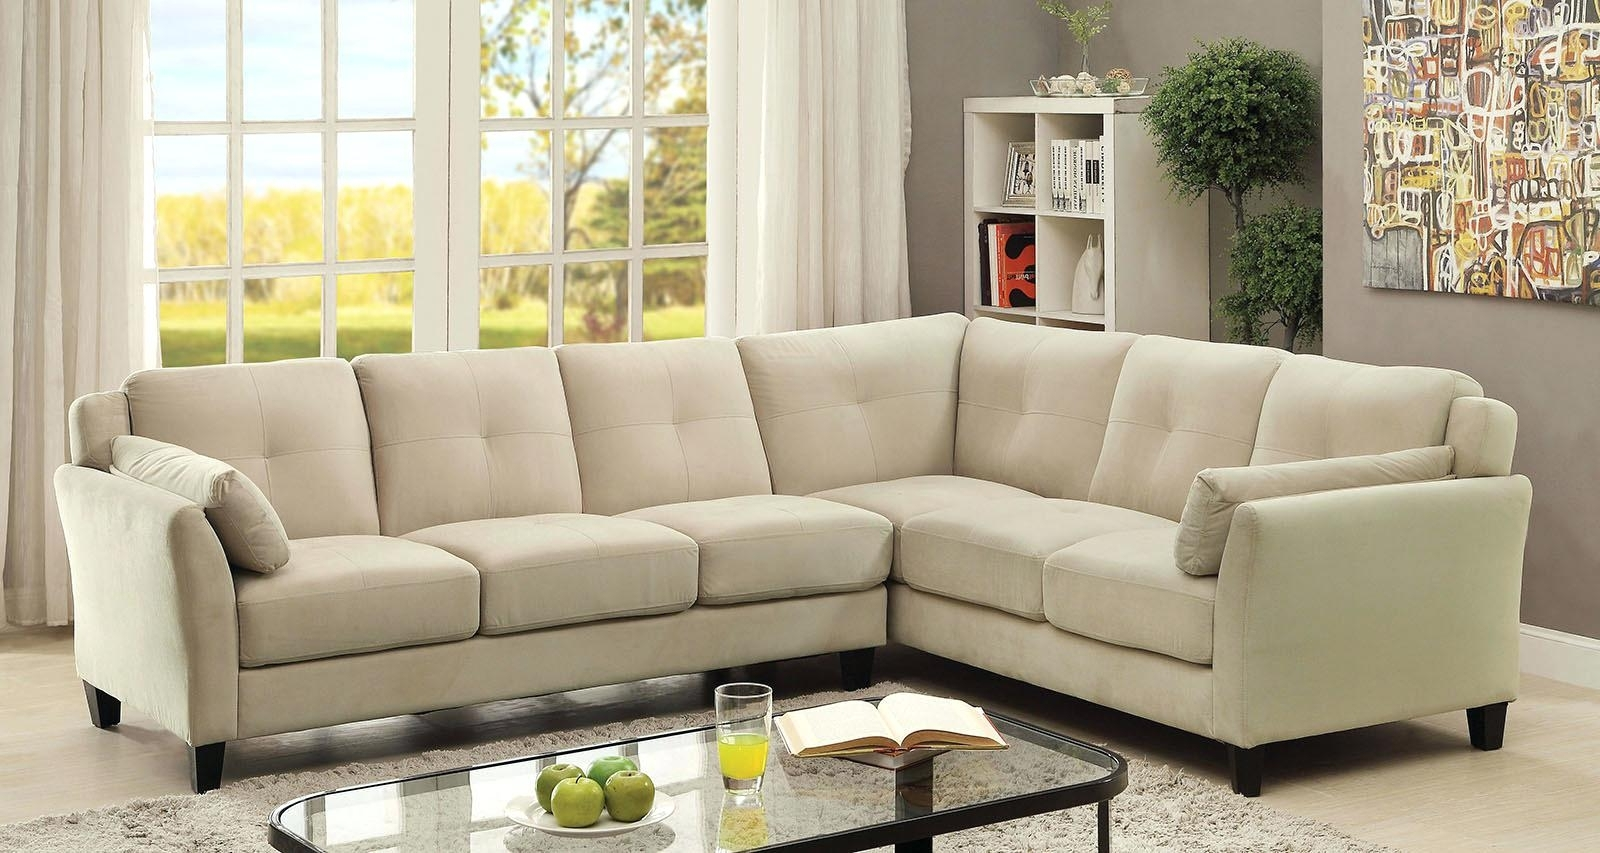 Sectional Sofa Sale Sa Couches For Near Me Liquidation Toronto Inside Current Canada Sale Sectional Sofas (View 13 of 20)